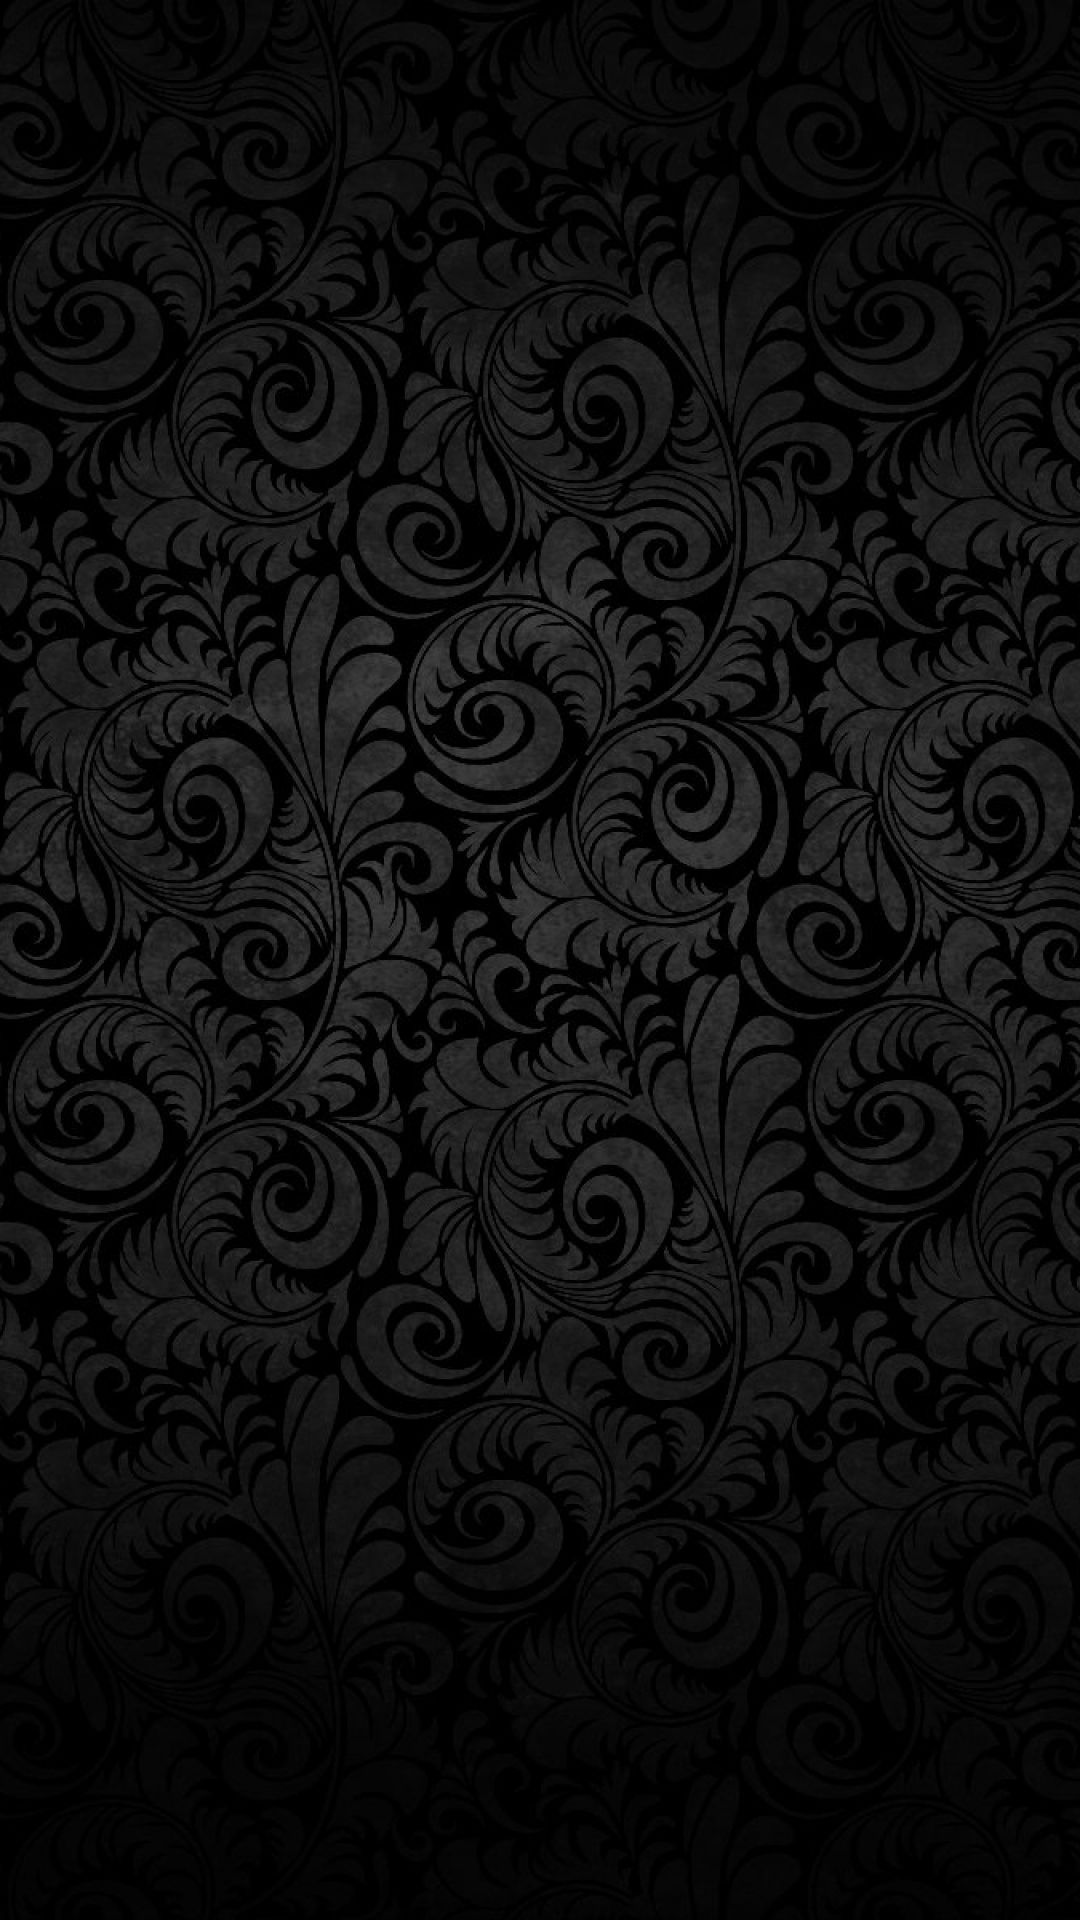 1080X1920 Wallpaper Black HD Wallpapers